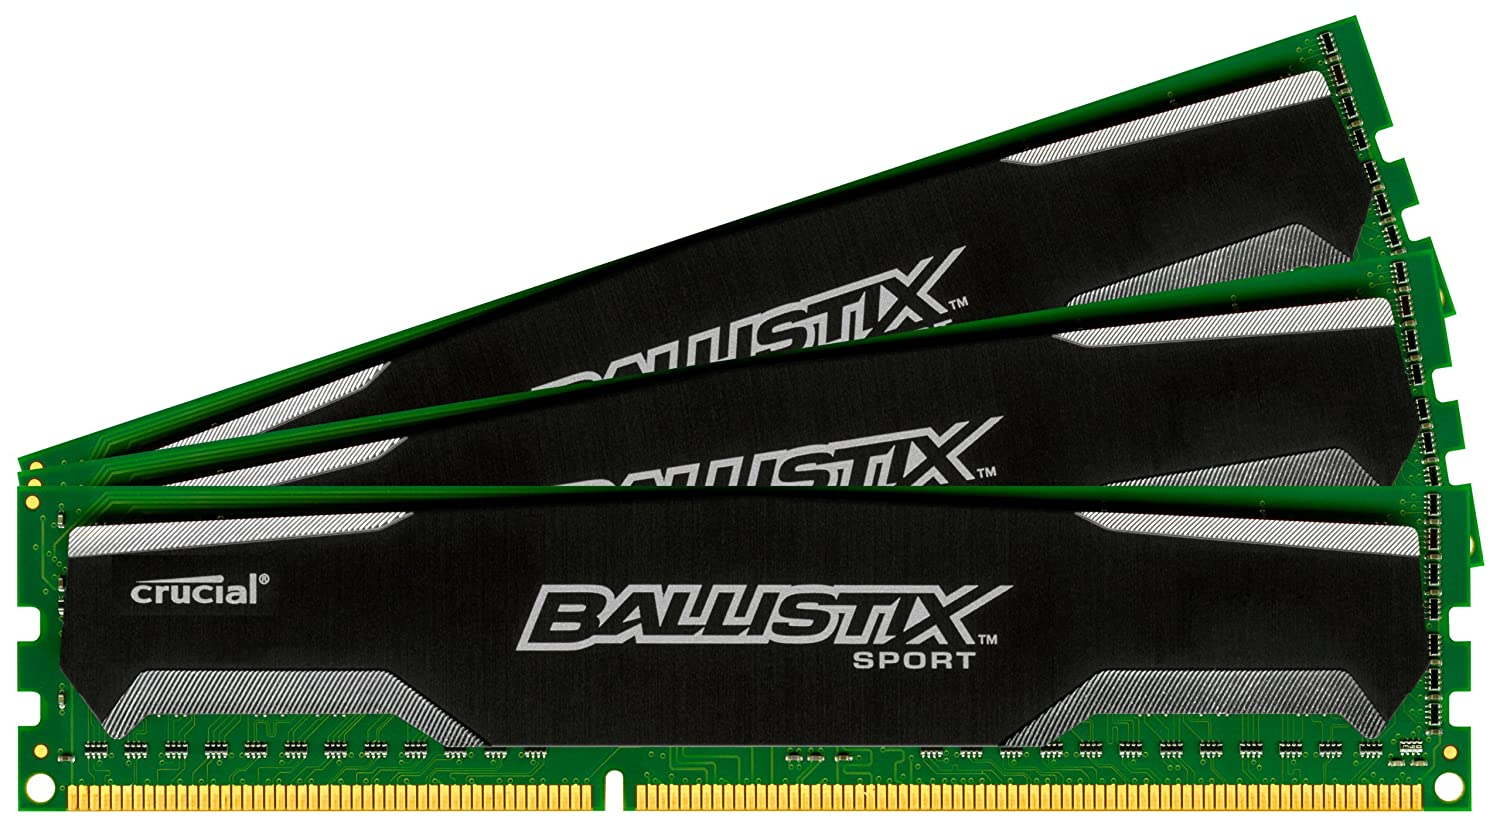 Ballistix 12GB (3 x 4GB) DDR3 PC3-12800 Sport UDIMM 240 Pin Memory Module Kit